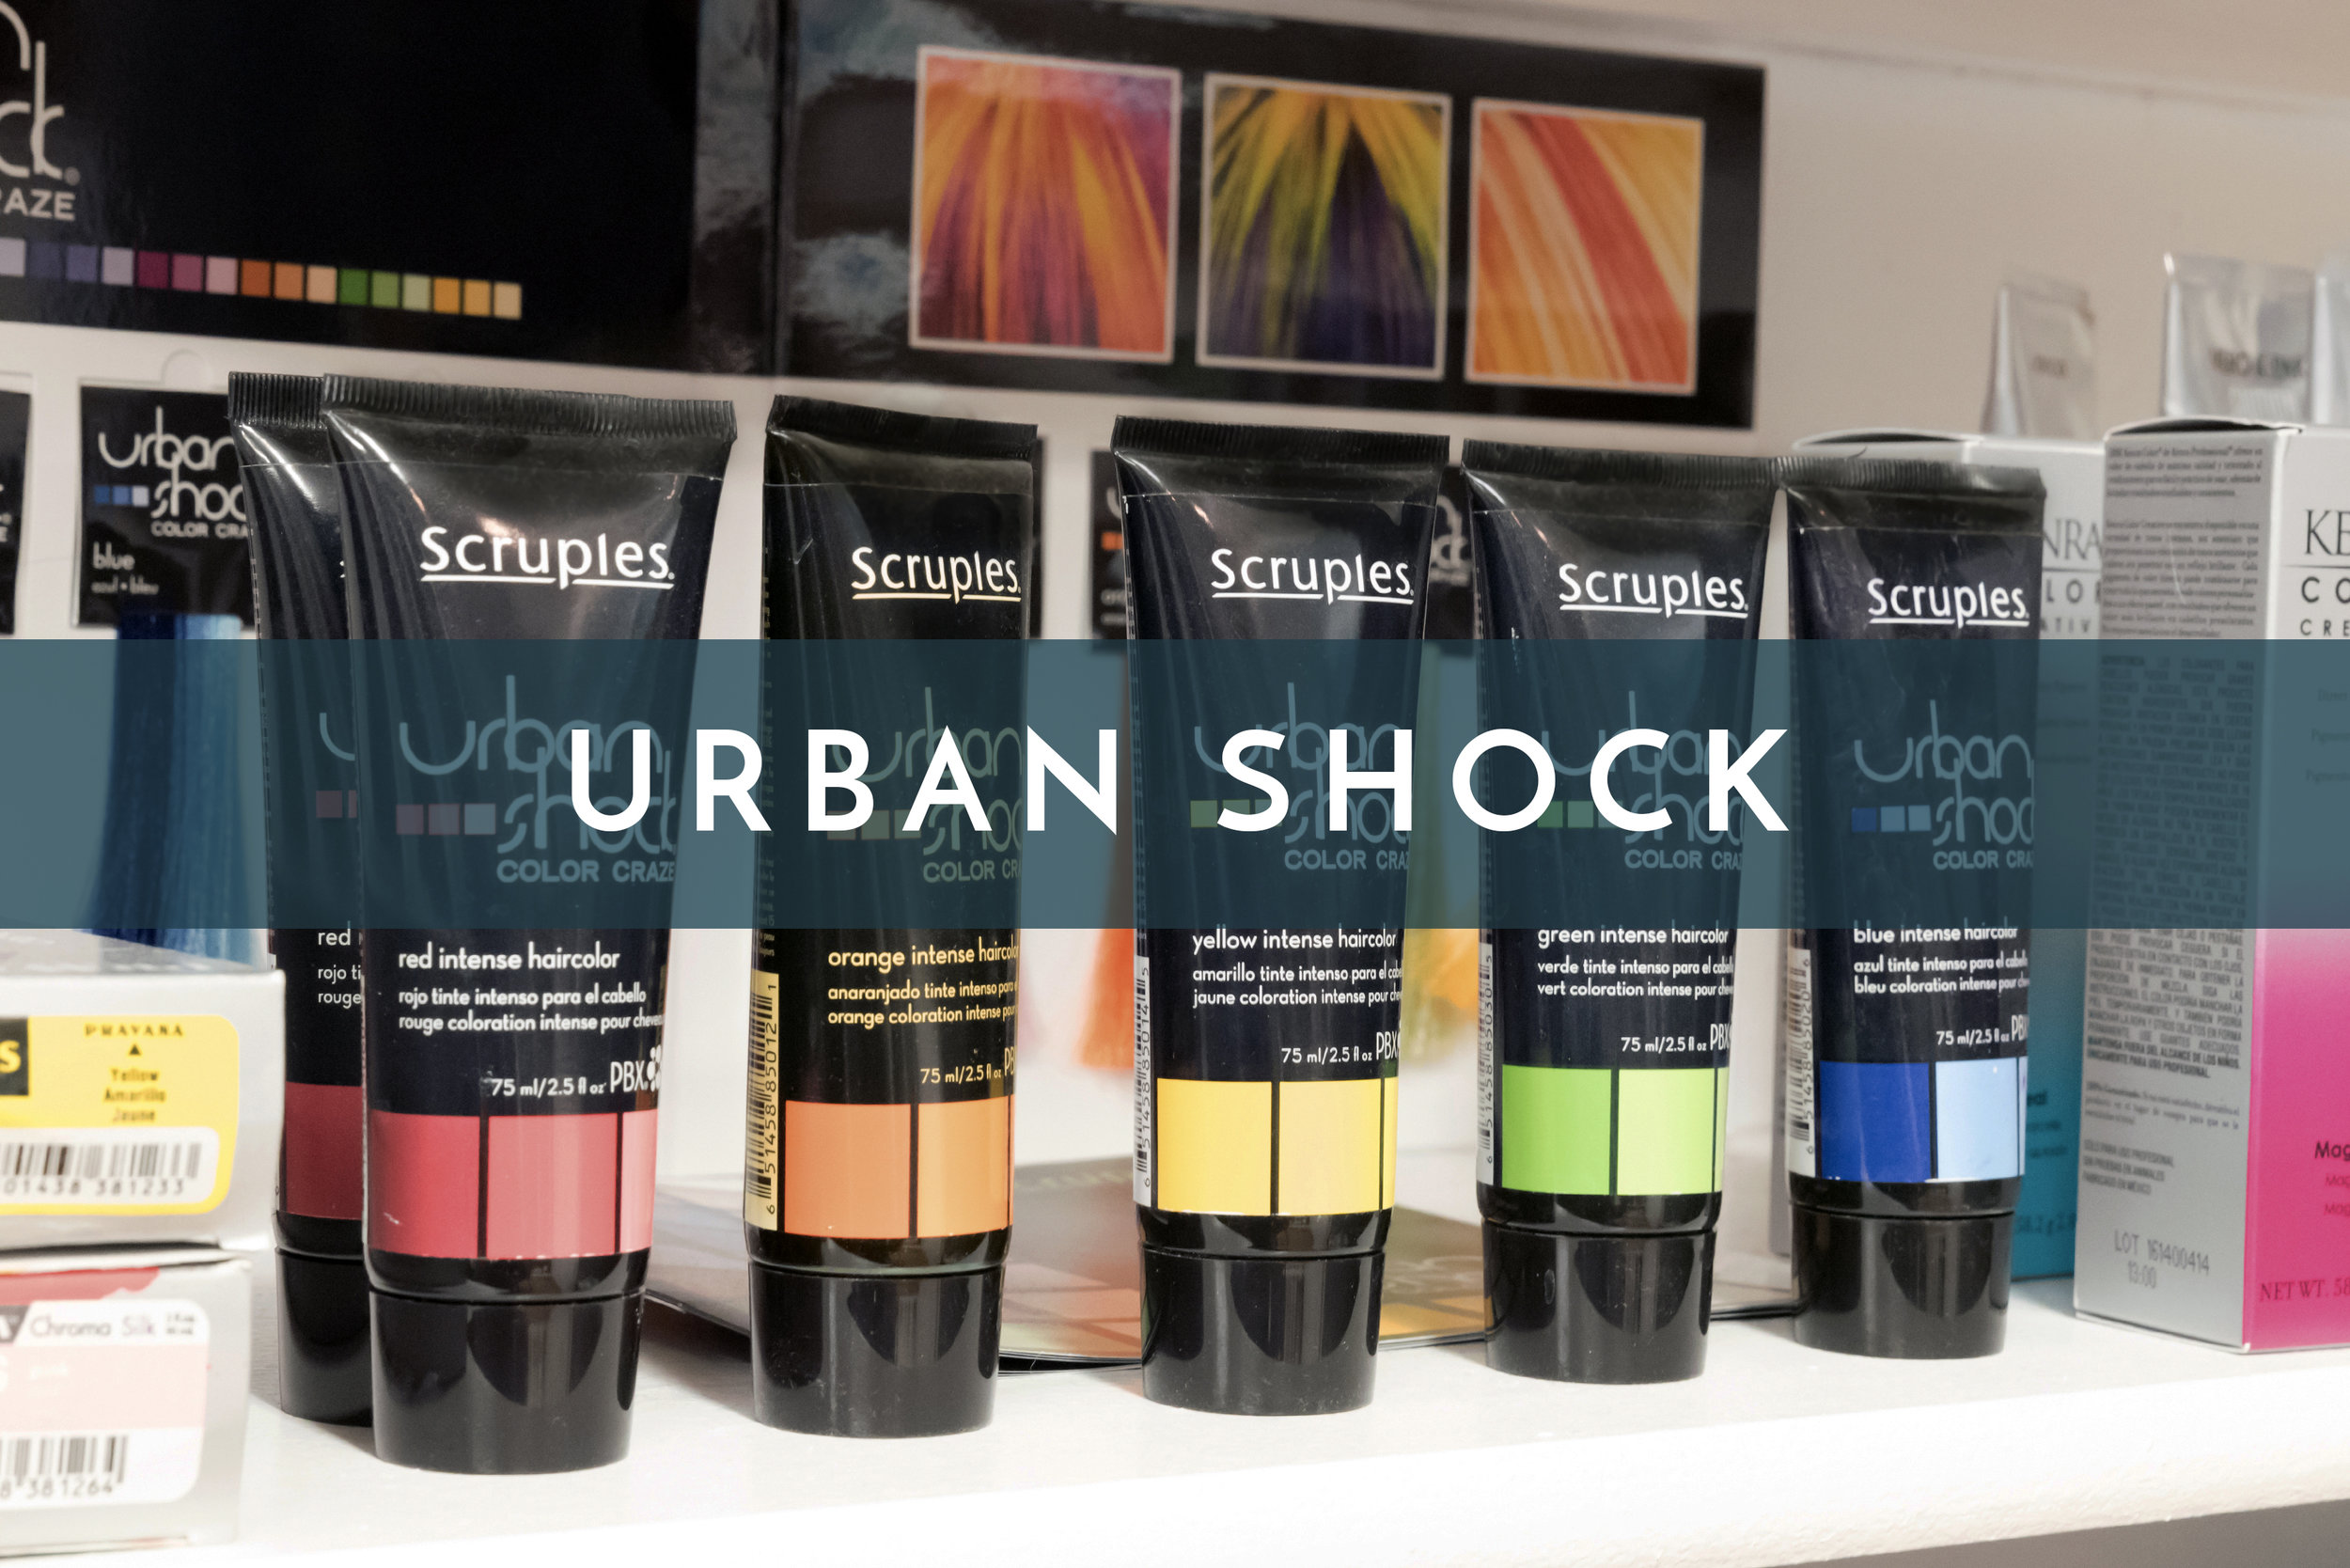 Salon-Heads-Up-Urban-Shock-Hair-Products.jpg